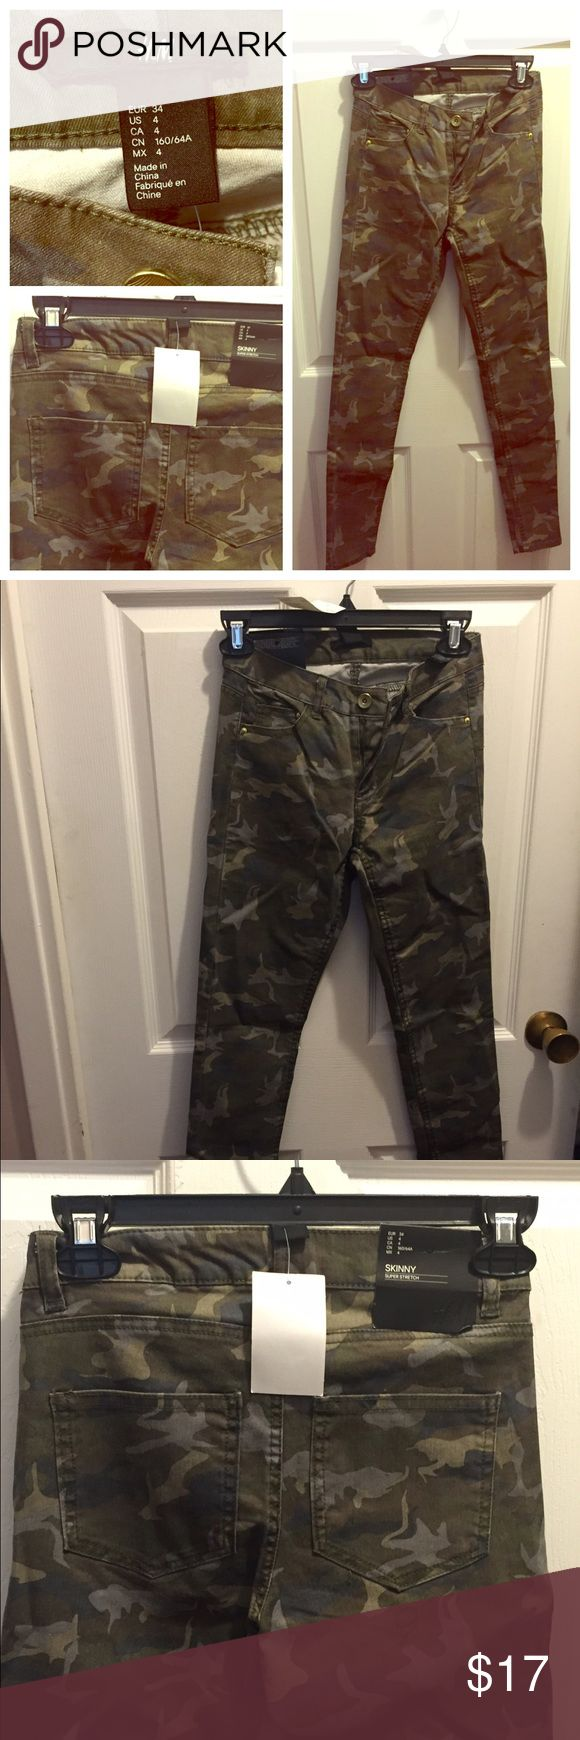 New with Tags...H&M Camo Skinny Pants Size 4! VERY trendy new with tags skinny super stretch size 4 Camo pants from H&M. H&M Pants Skinny